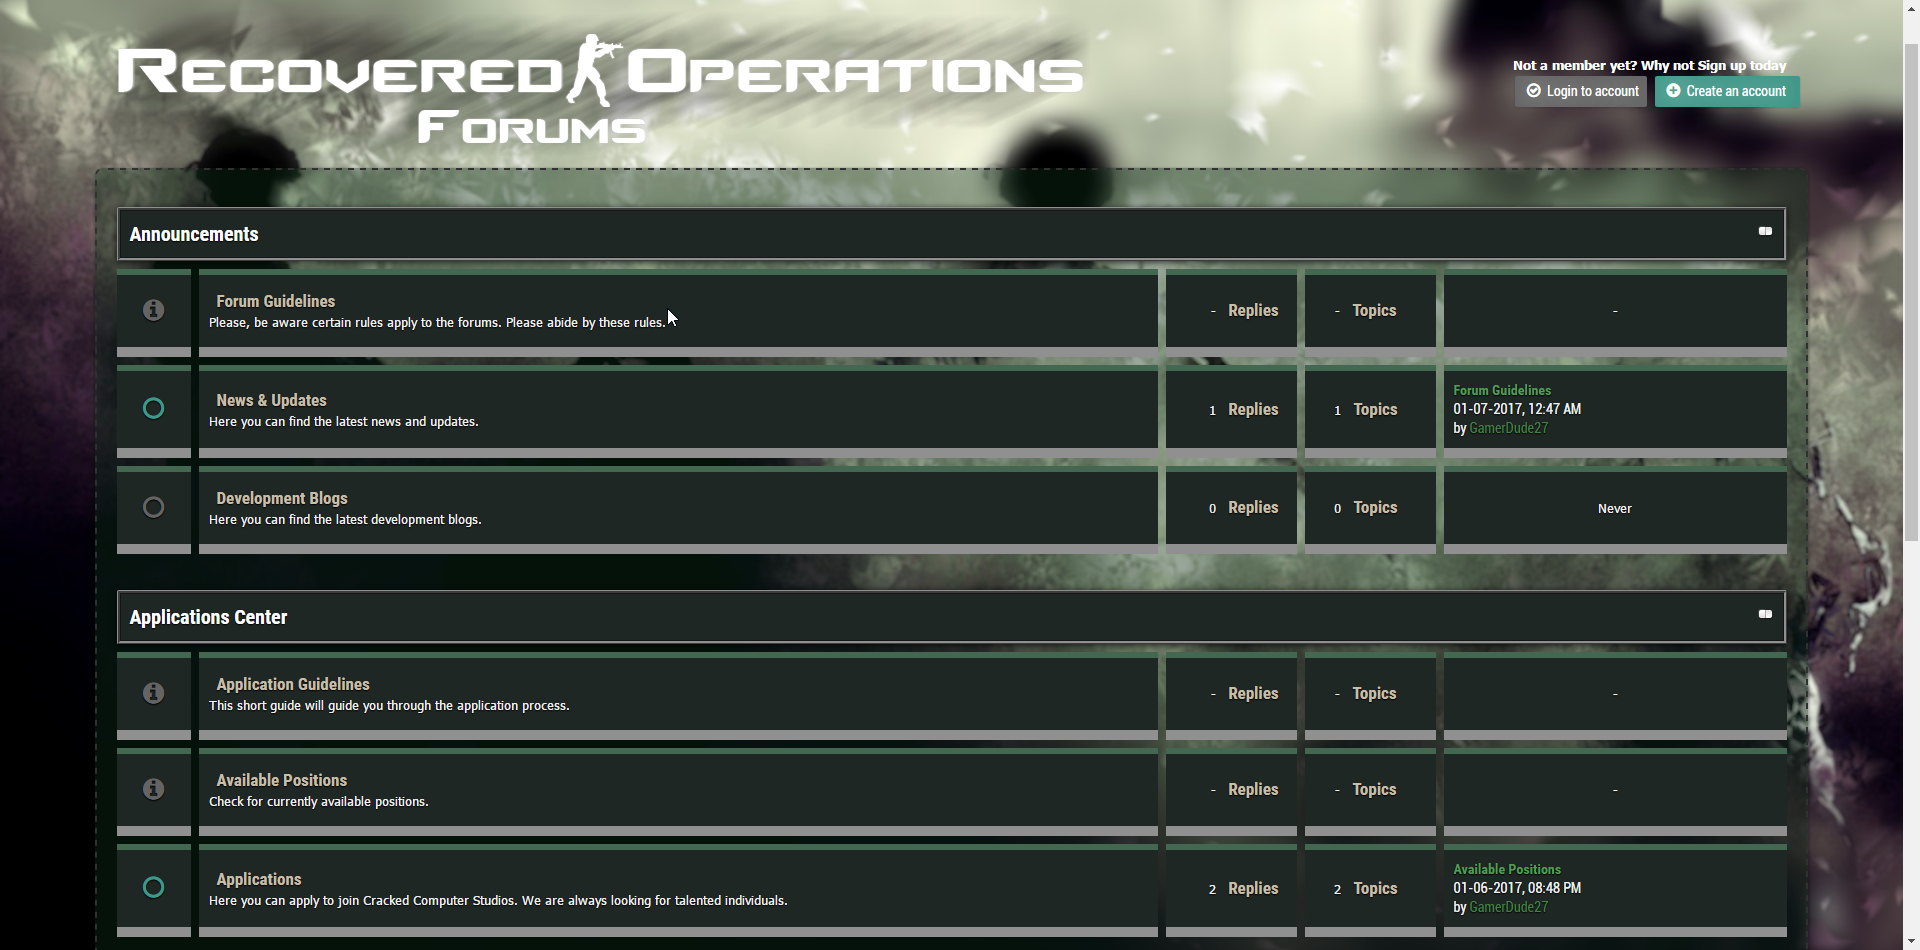 The forums for Recovered Operations